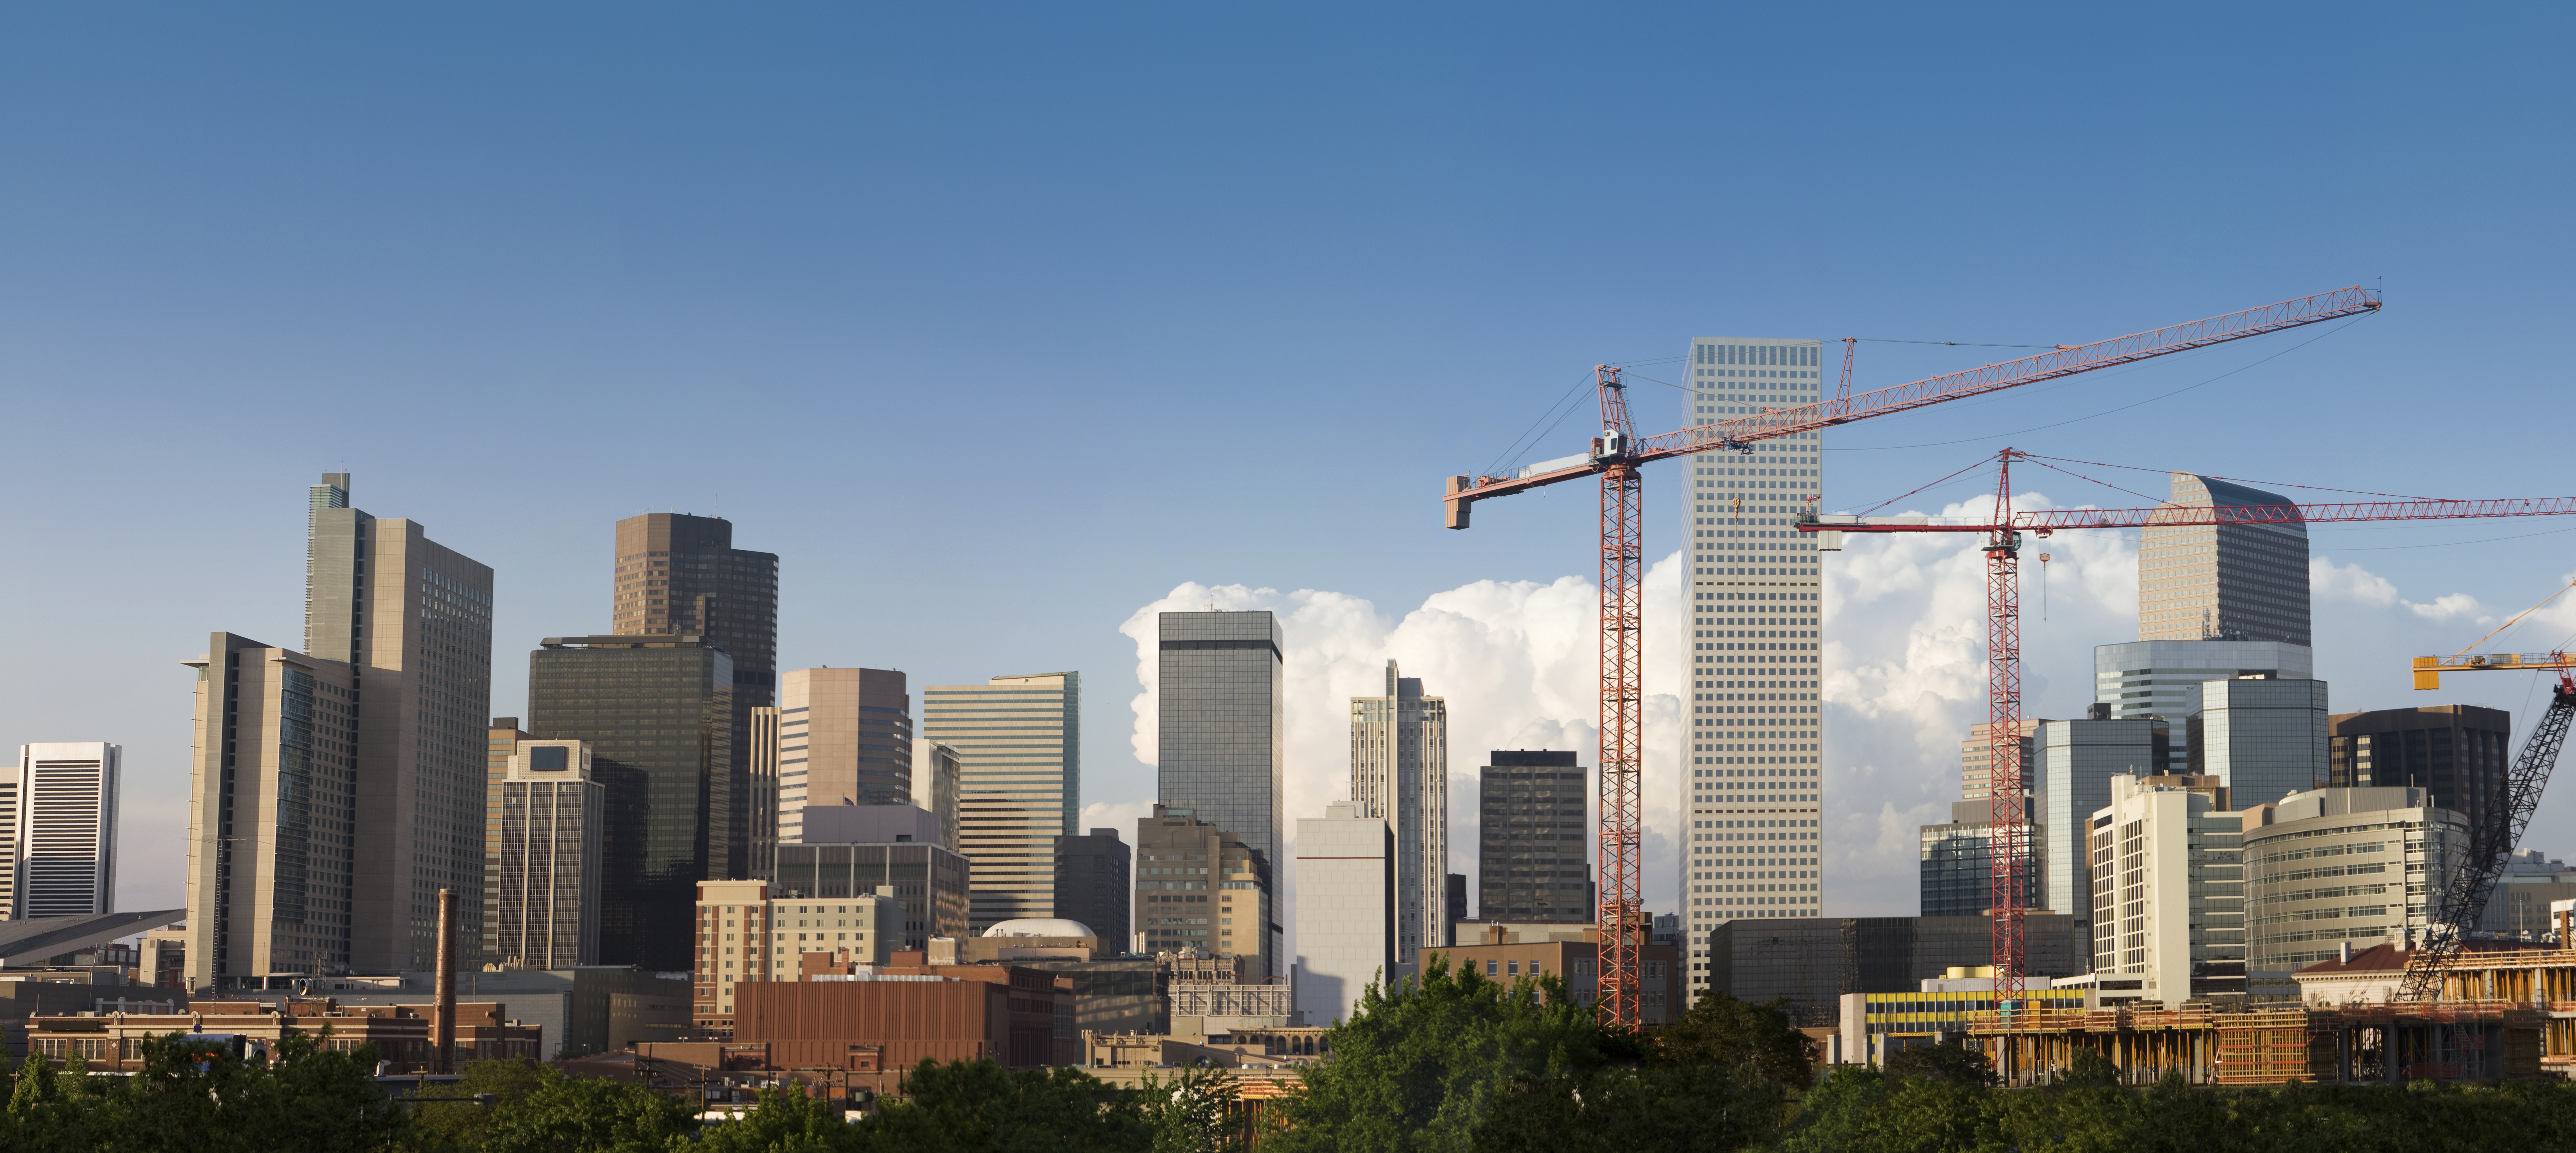 Sharp vertical shots merged into a huge panoramic composition of the skyline of Denver, Colorado.